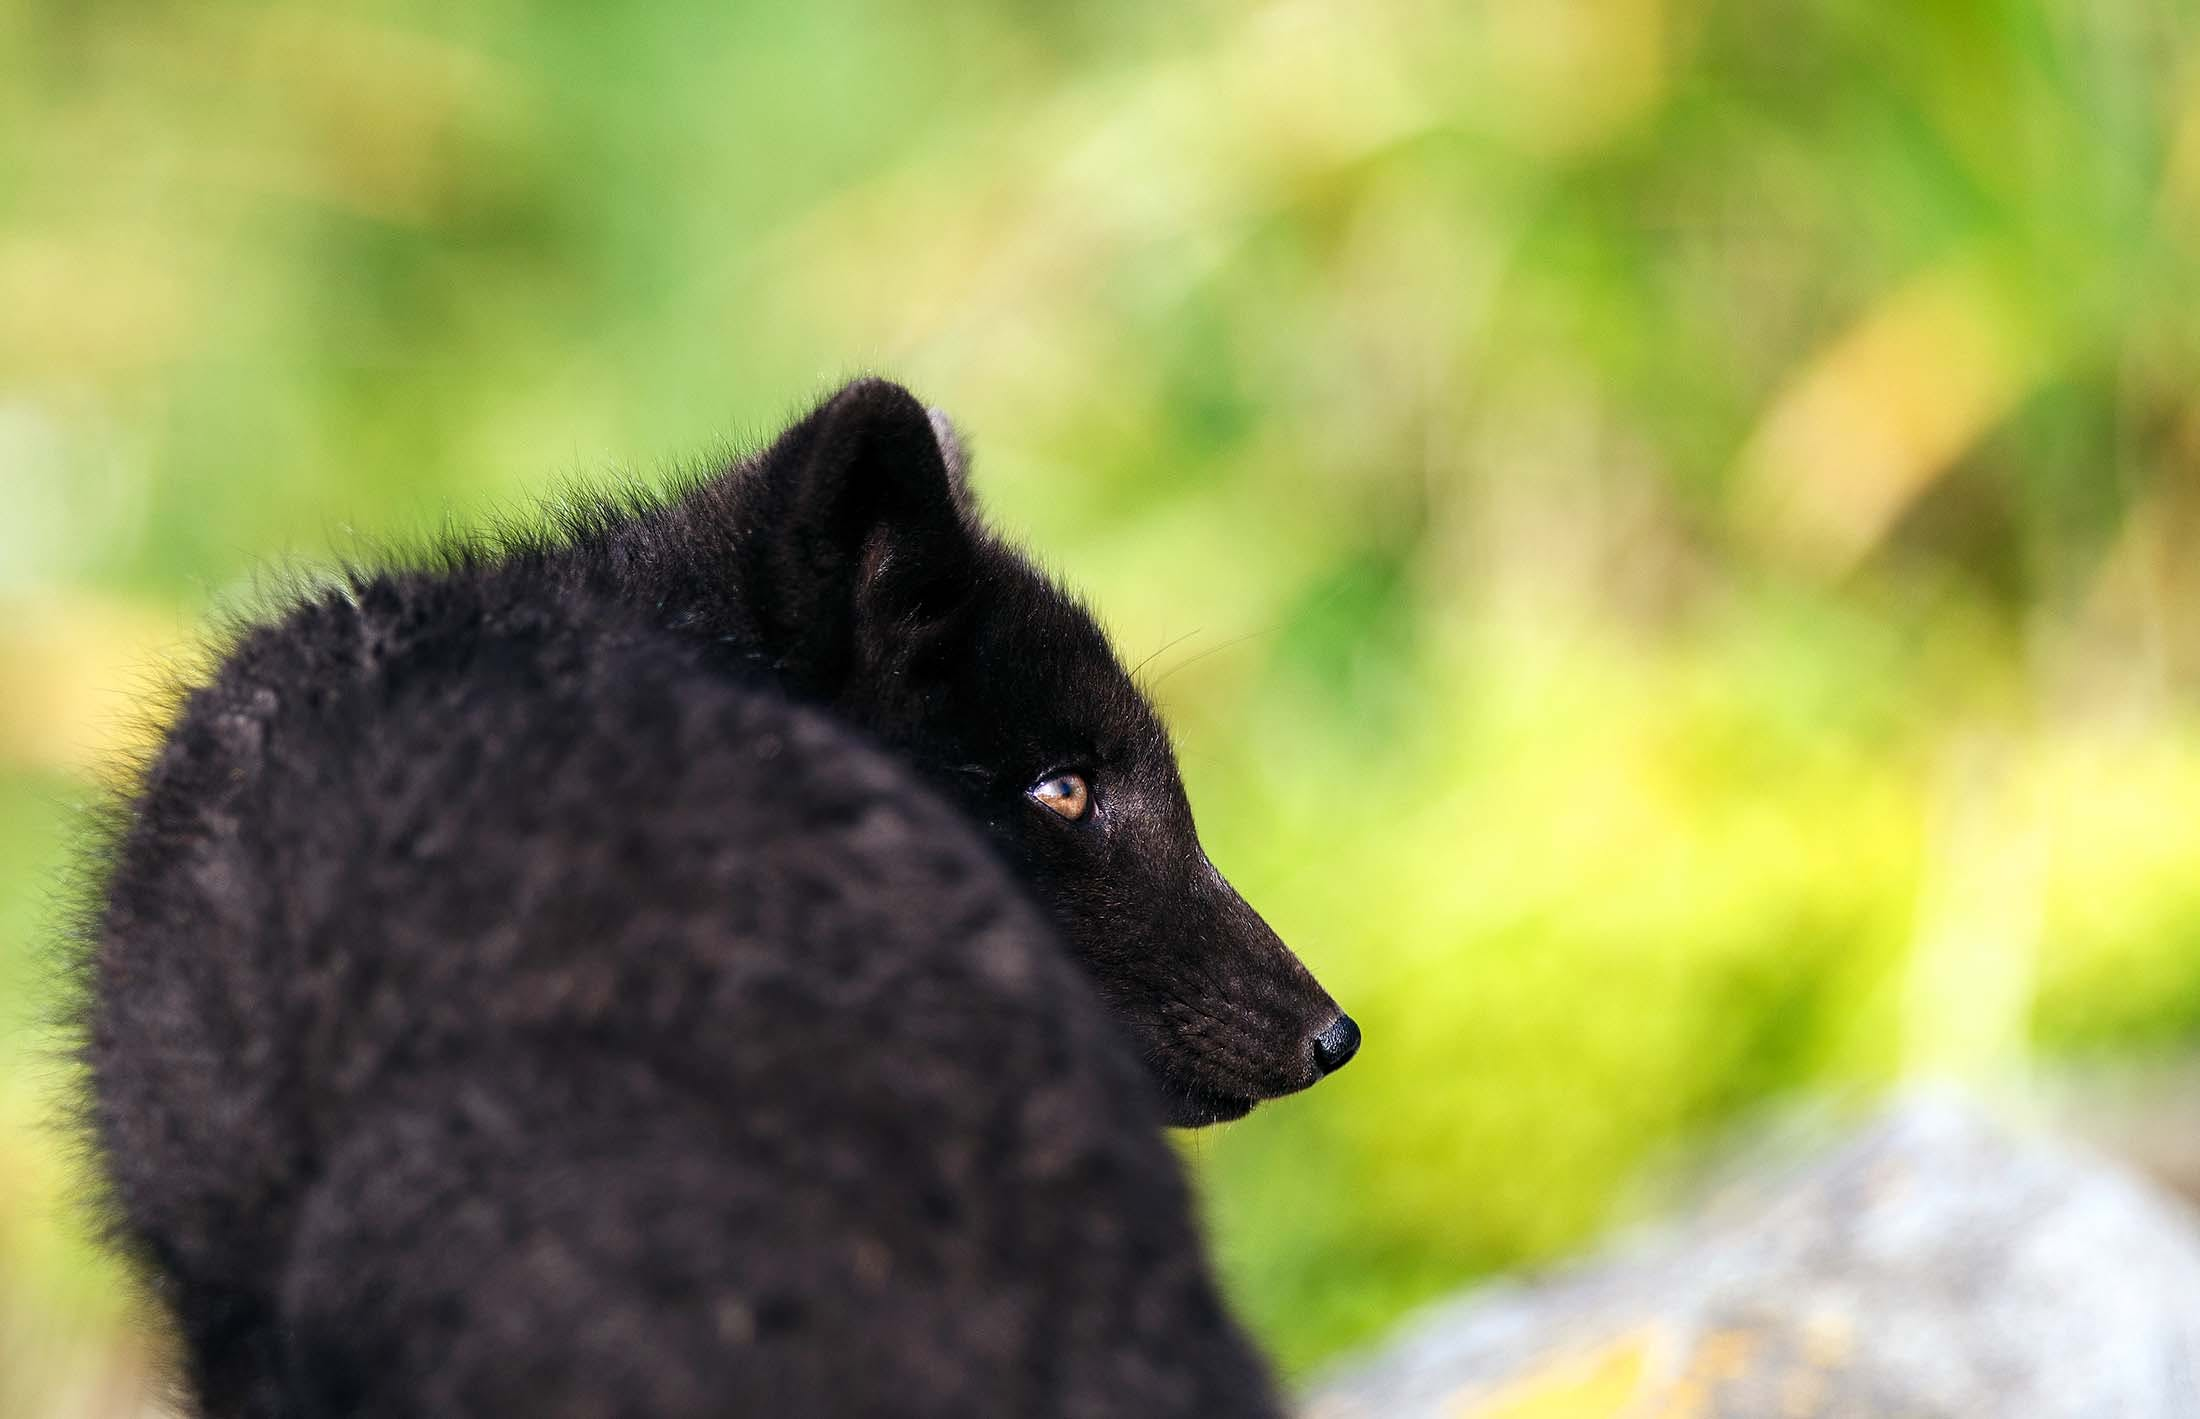 Arctic fox on Yankicha Island, Russian Far East